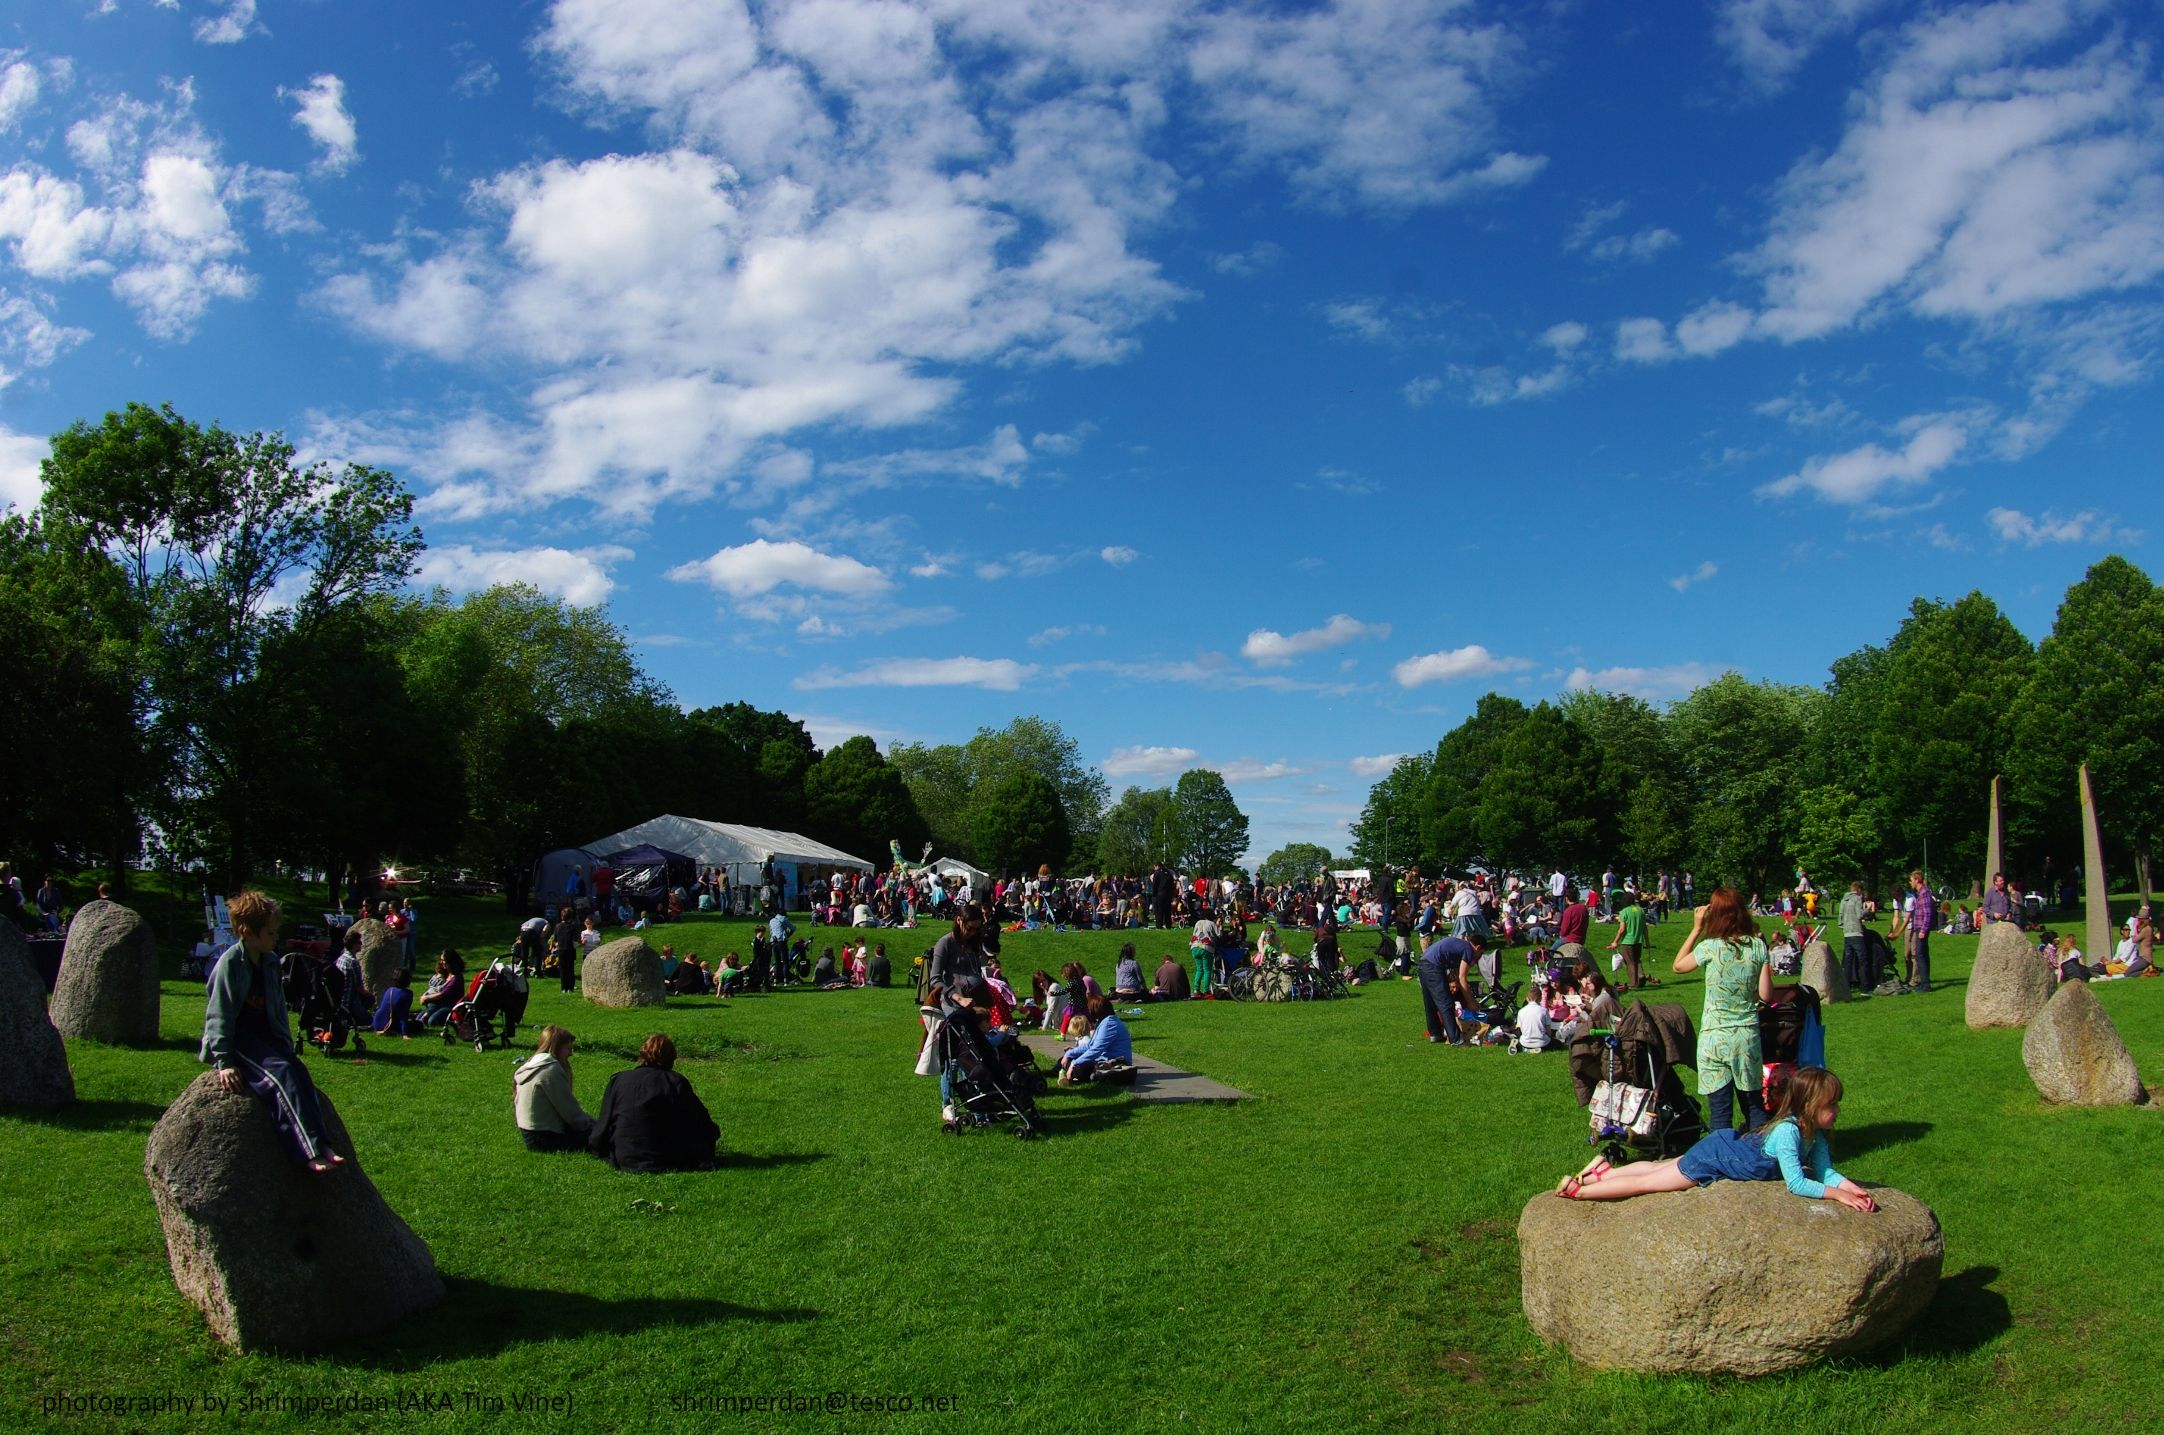 90327_brockley-max-south-east-londons-biggest-community-arts-festival-30th-may-to-7th-june-201.jpg